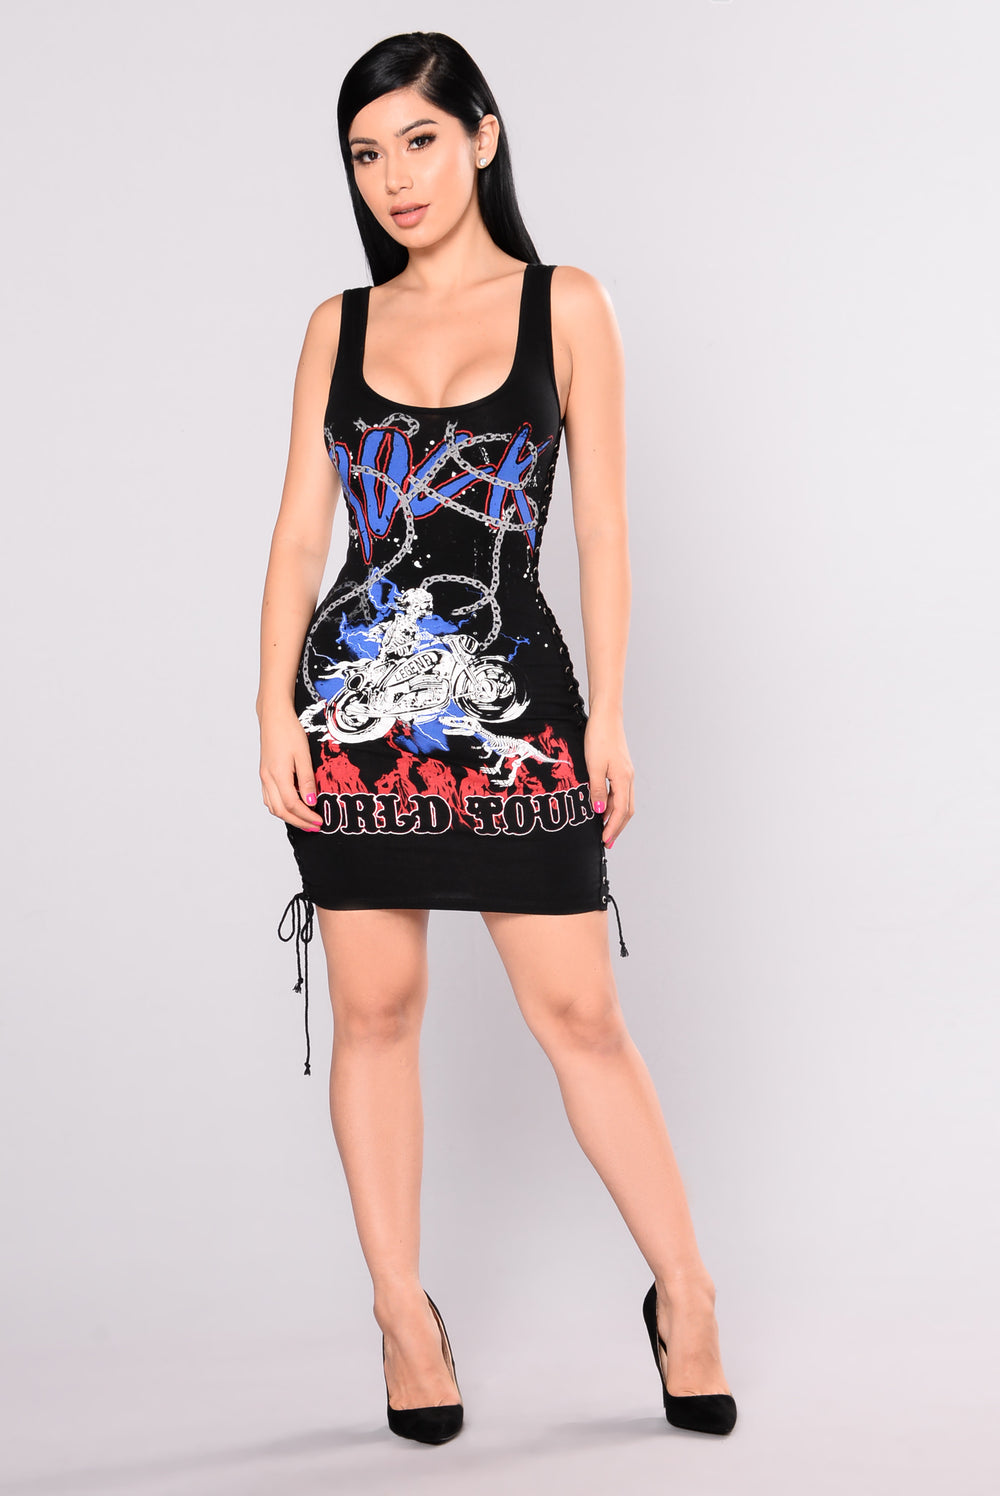 Chain Reaction Graphic Dress - Black